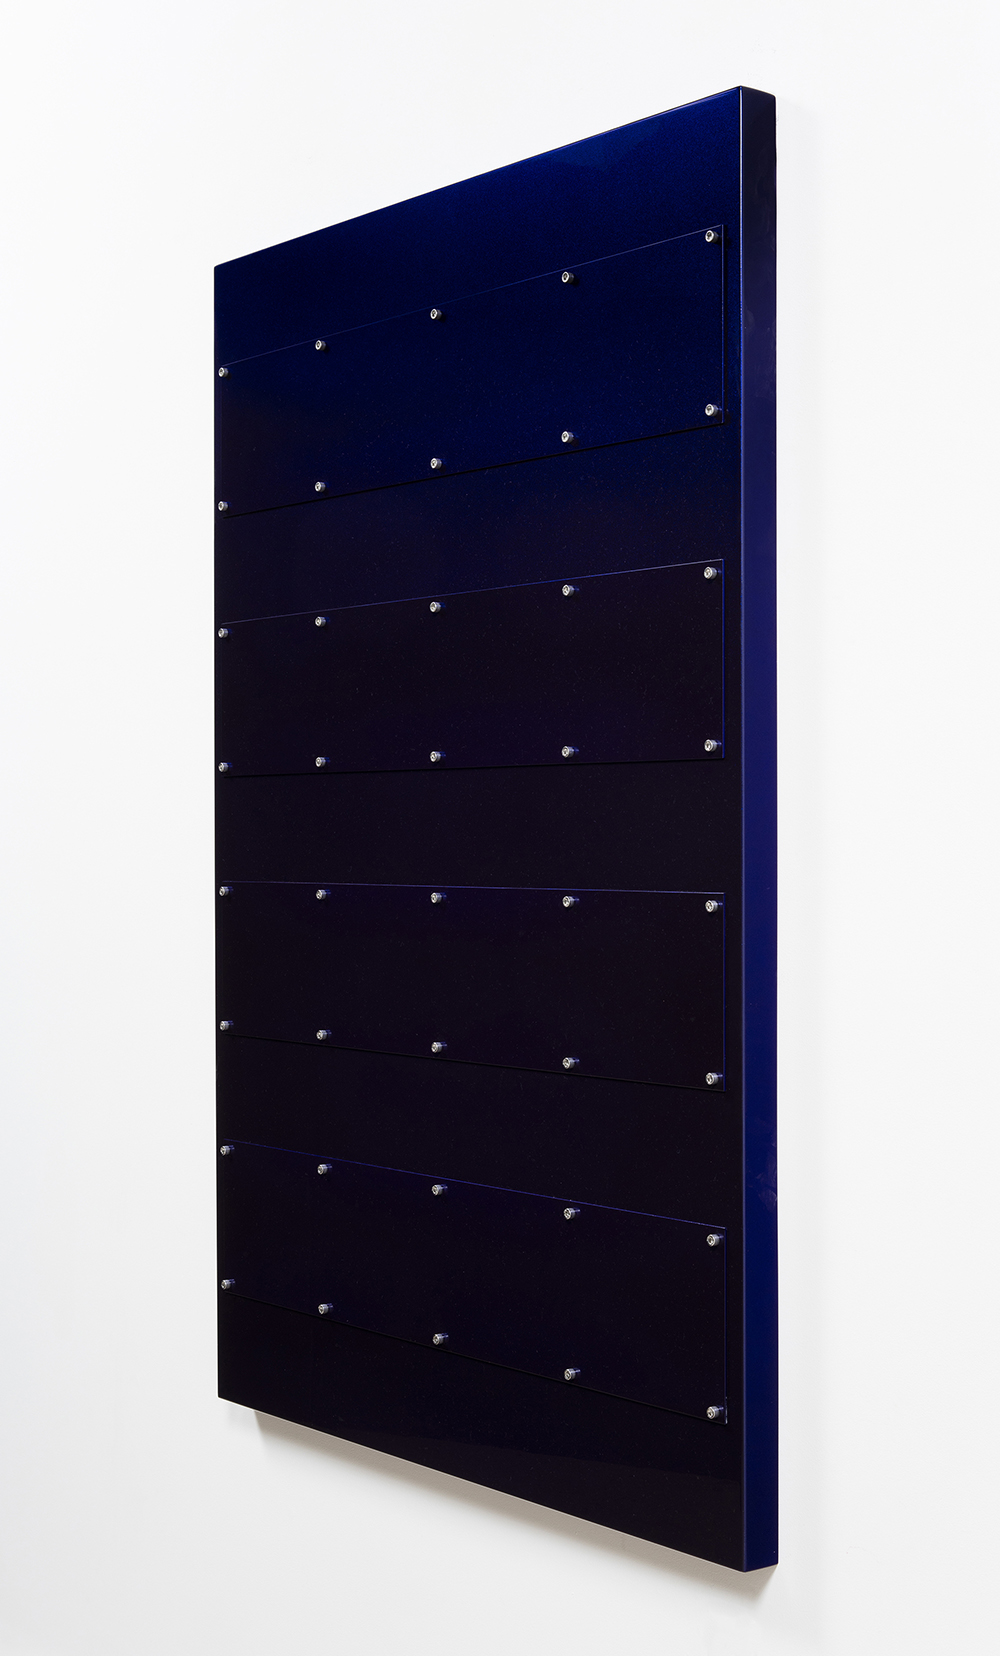 Joshua Saunders. <em>Purple Stack 1</em>, 2017. Enamel on aluminum, stainless steel, 60 x 40 x 1 1/2 inches